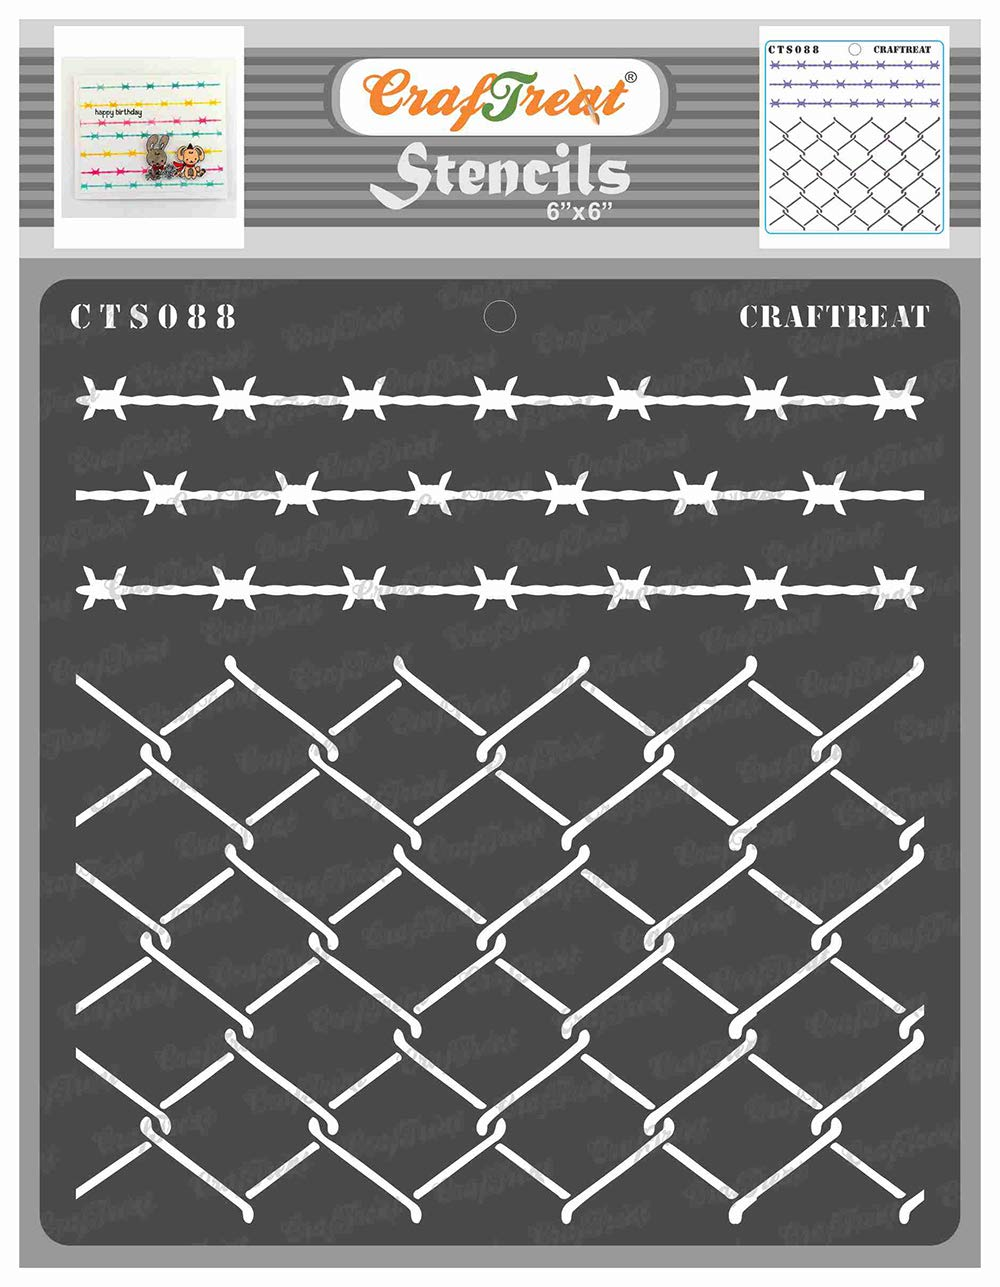 CrafTreat Fence Stencils for Painting on Wood, Canvas, Paper, Fabric, Floor, Wall and Tile - Wire Fence - 6x6 Inches - Reusable DIY Art and Craft Stencils - Barbed Wire Stencil